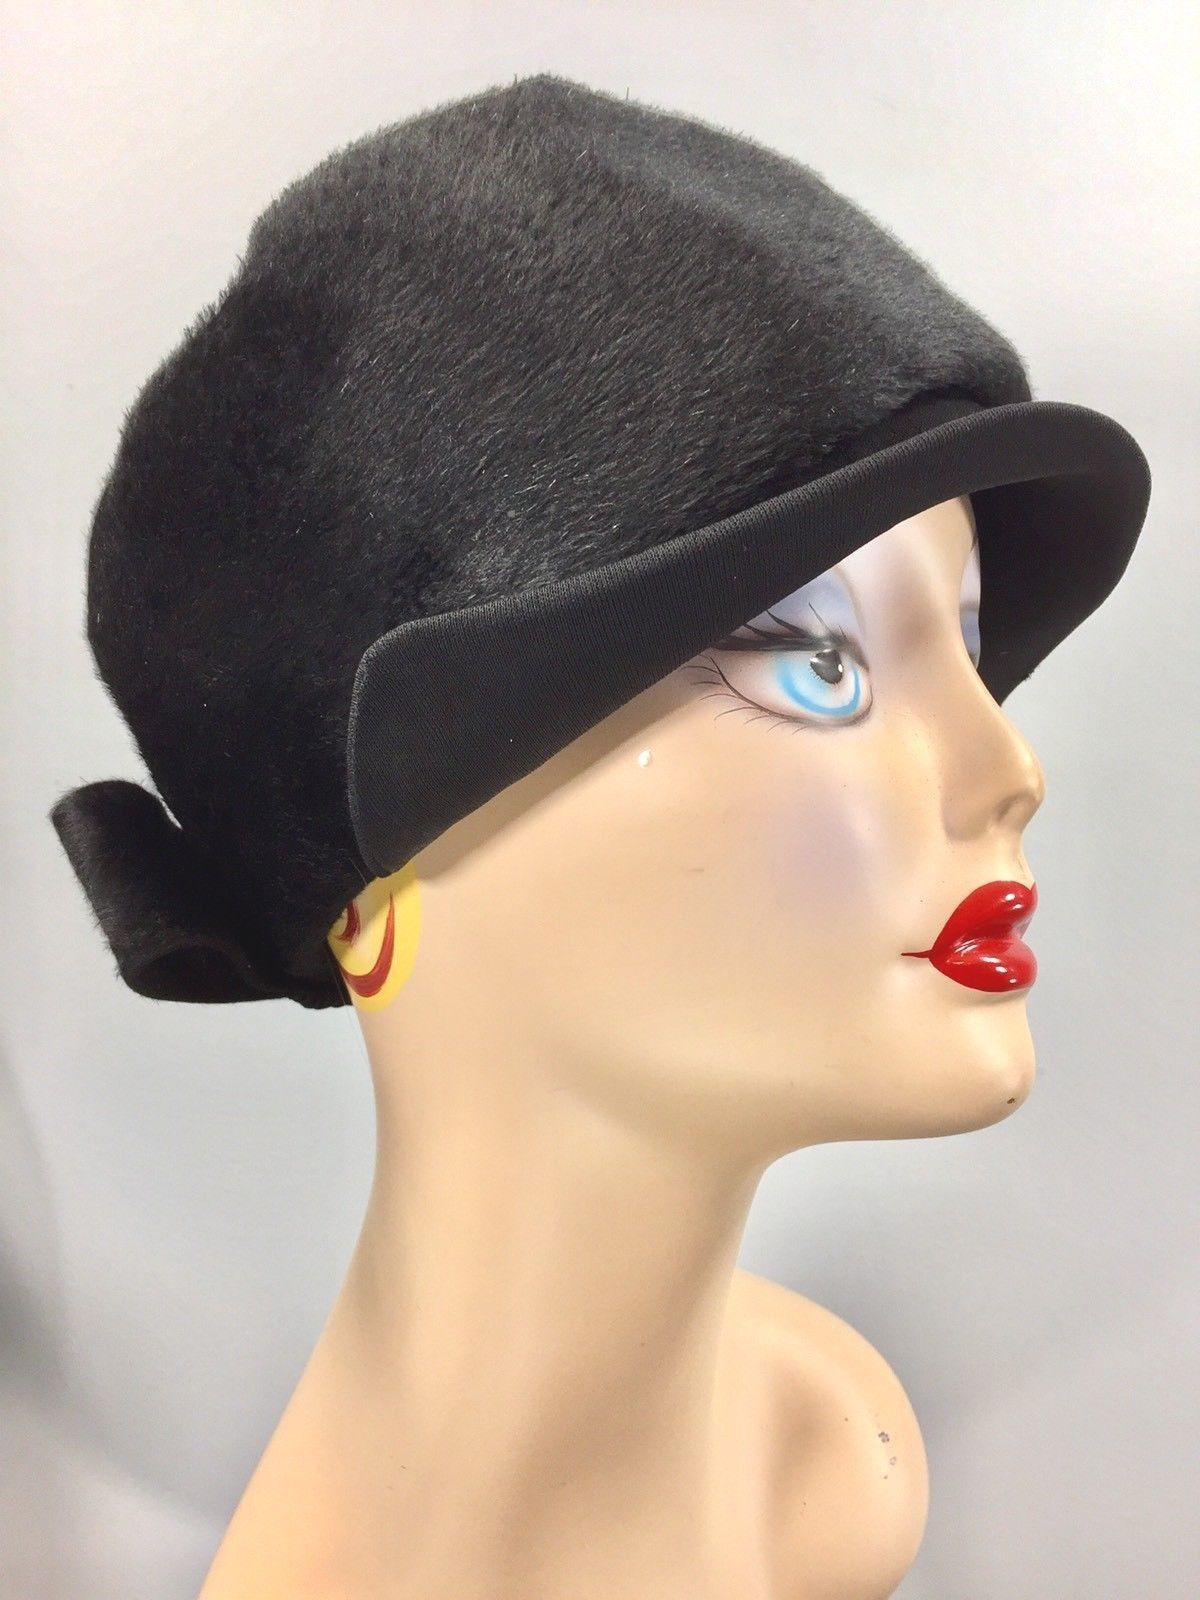 d6c0792a915fb4 Vintage 1920s black art deco cloche hat Helios Italy flapper 20 / 20.5  inches | eBay